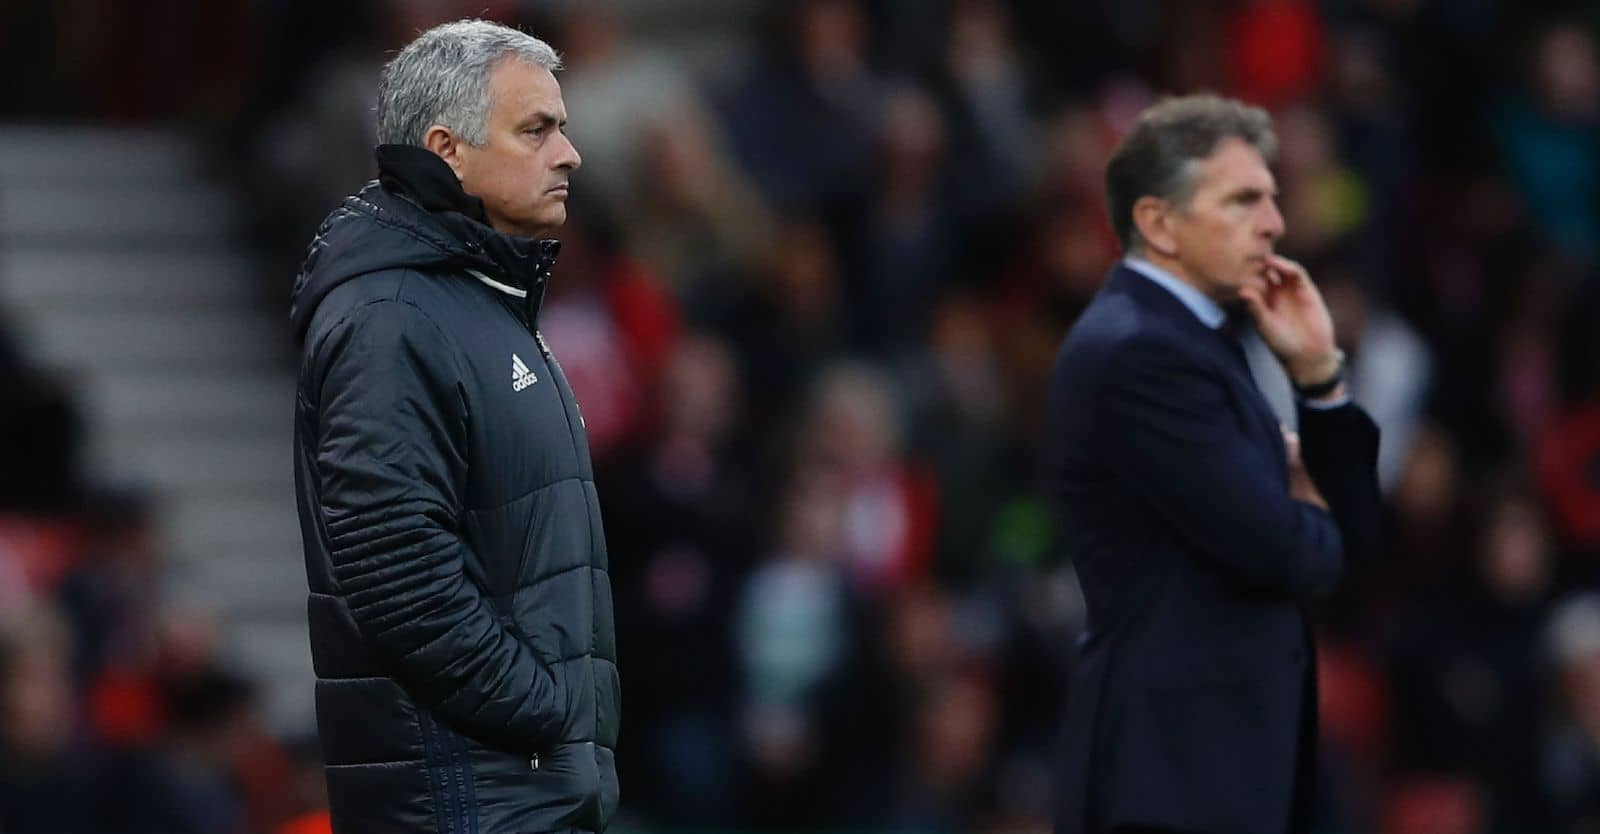 Jose Mourinho believes Manchester United can win the Premier League this season